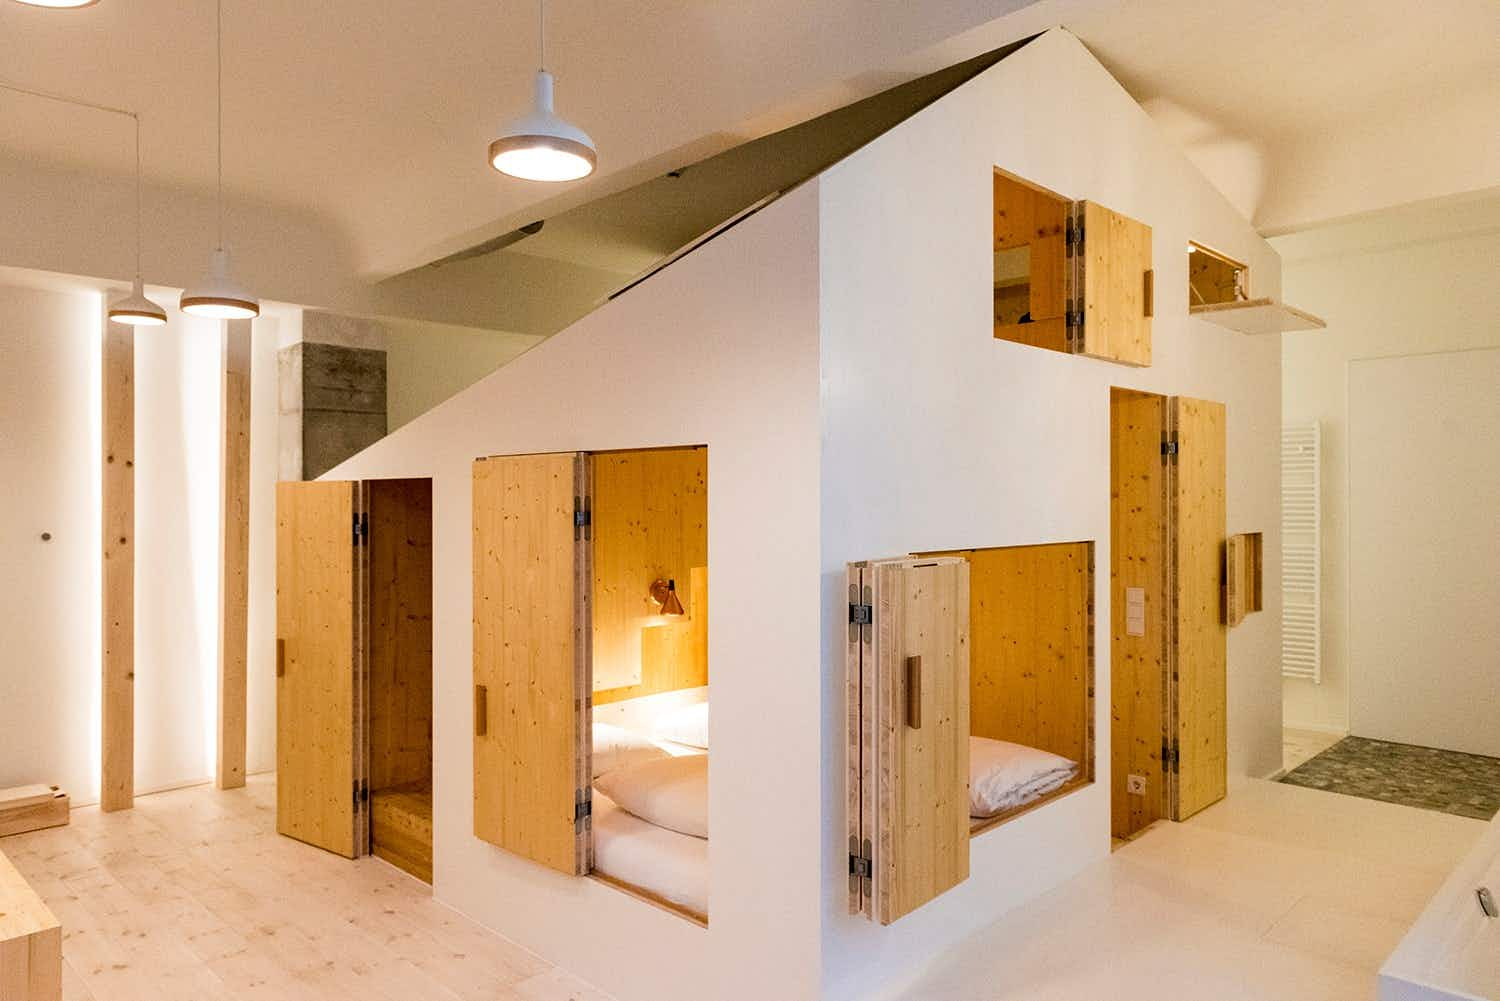 These playful 'Hideout' suites in a hotel in Berlin are the coolest thing